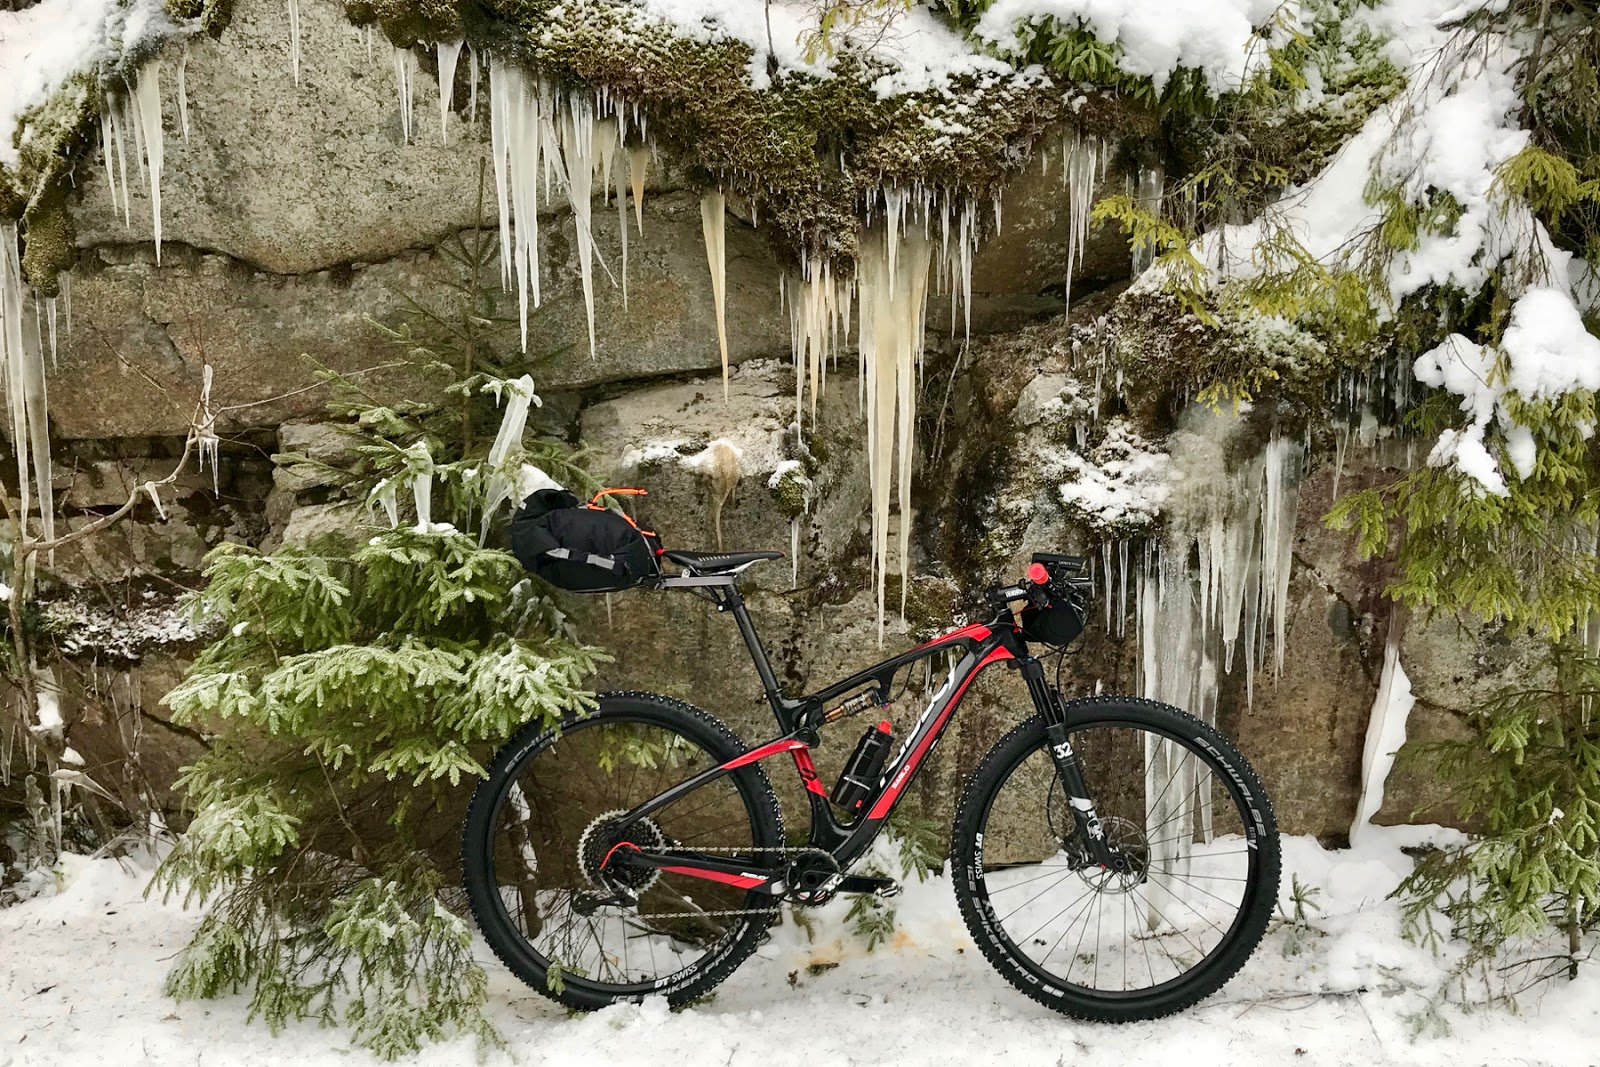 Review - Schwalbe Ice Spiker Pro Spiked MTB Tyres